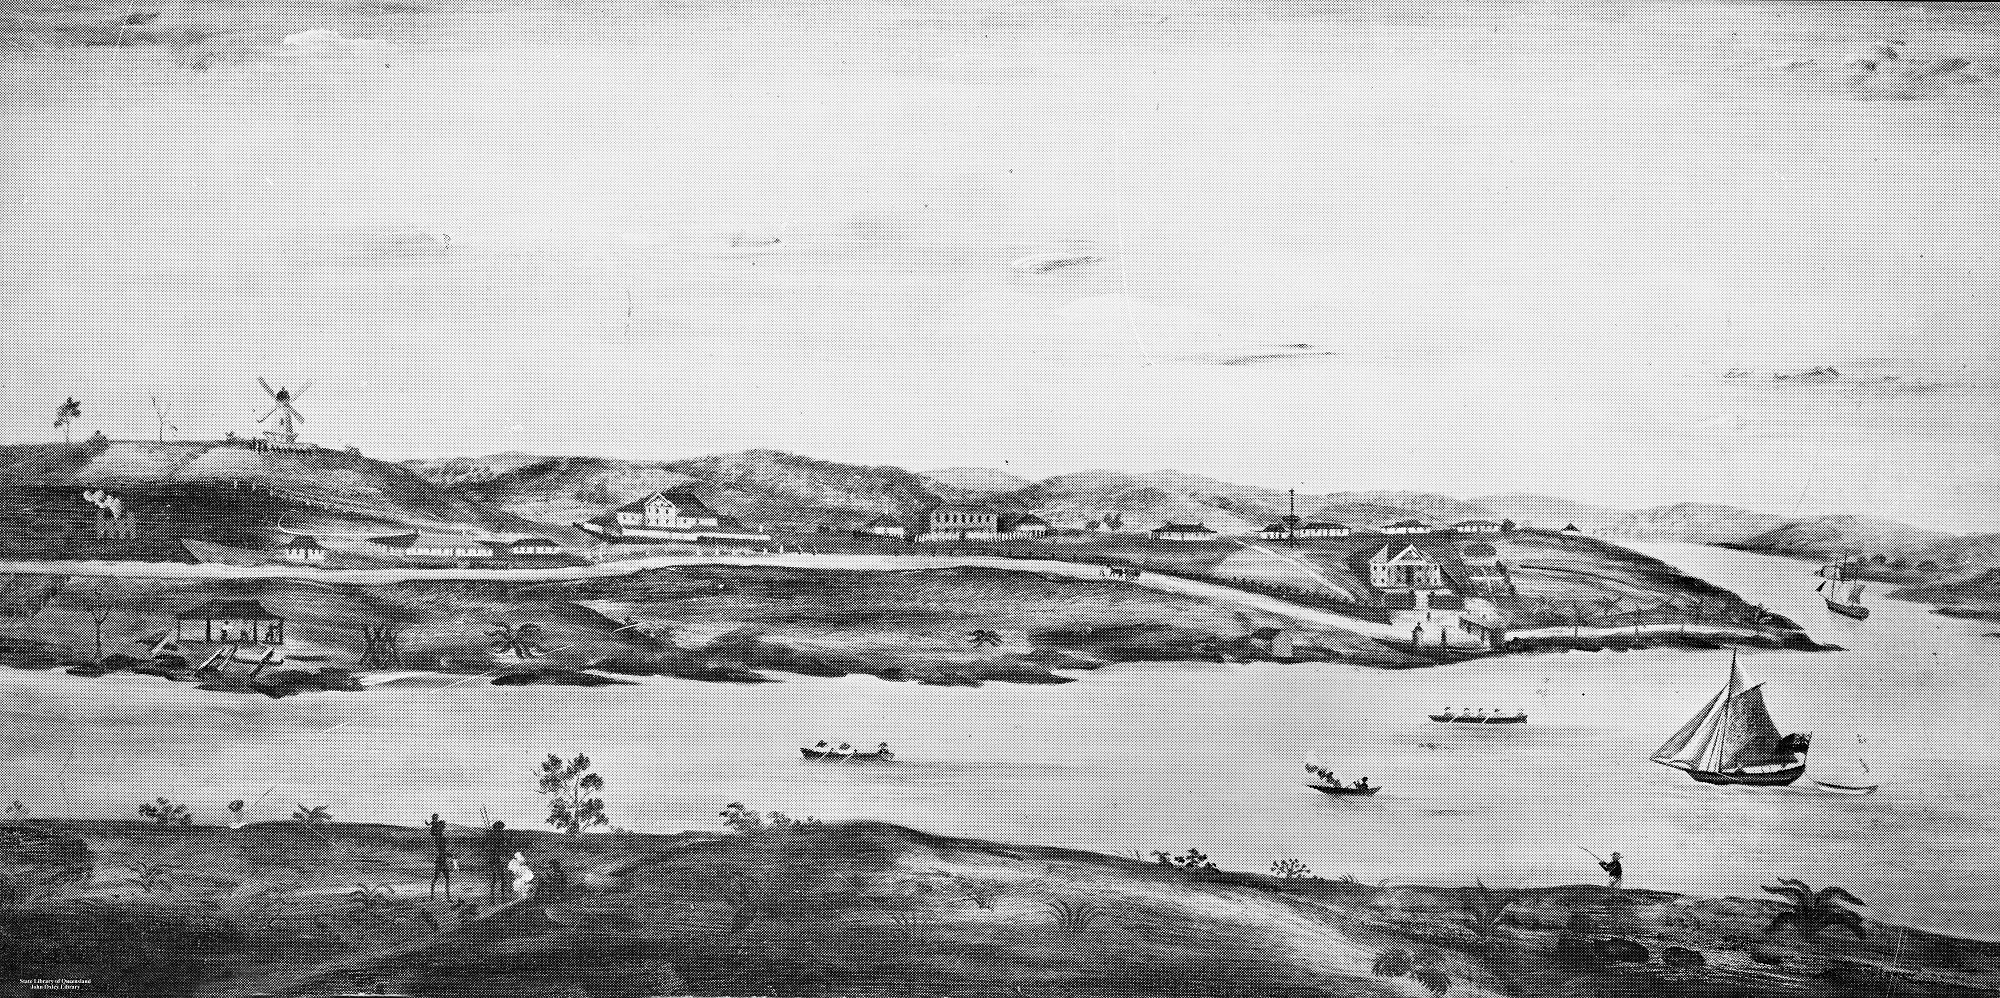 Image of early Brisbane Town in convict days ca 1831